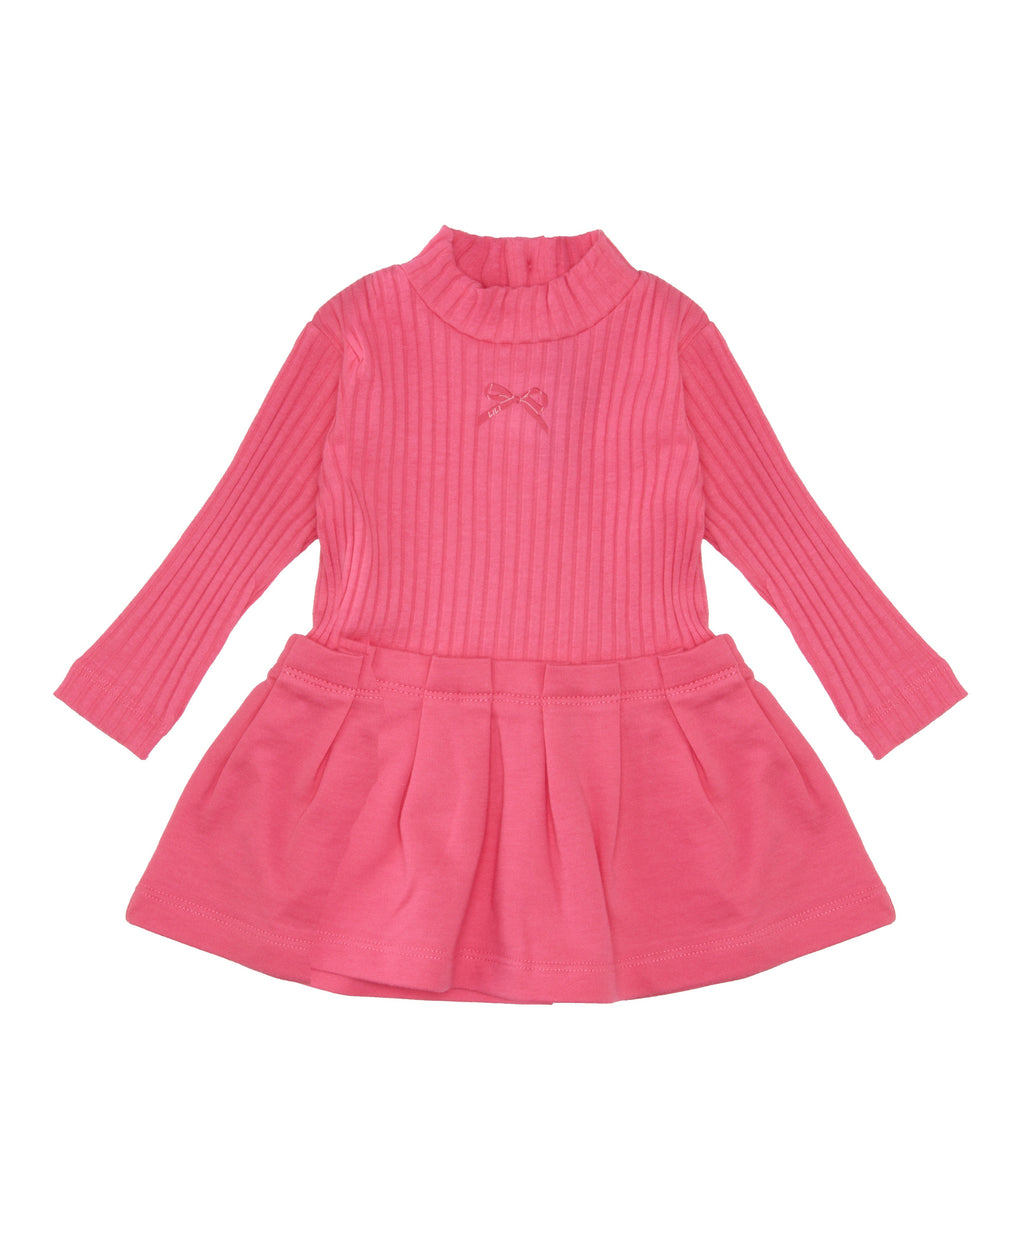 Lili Gaufrette Baby Turtleneck Dress